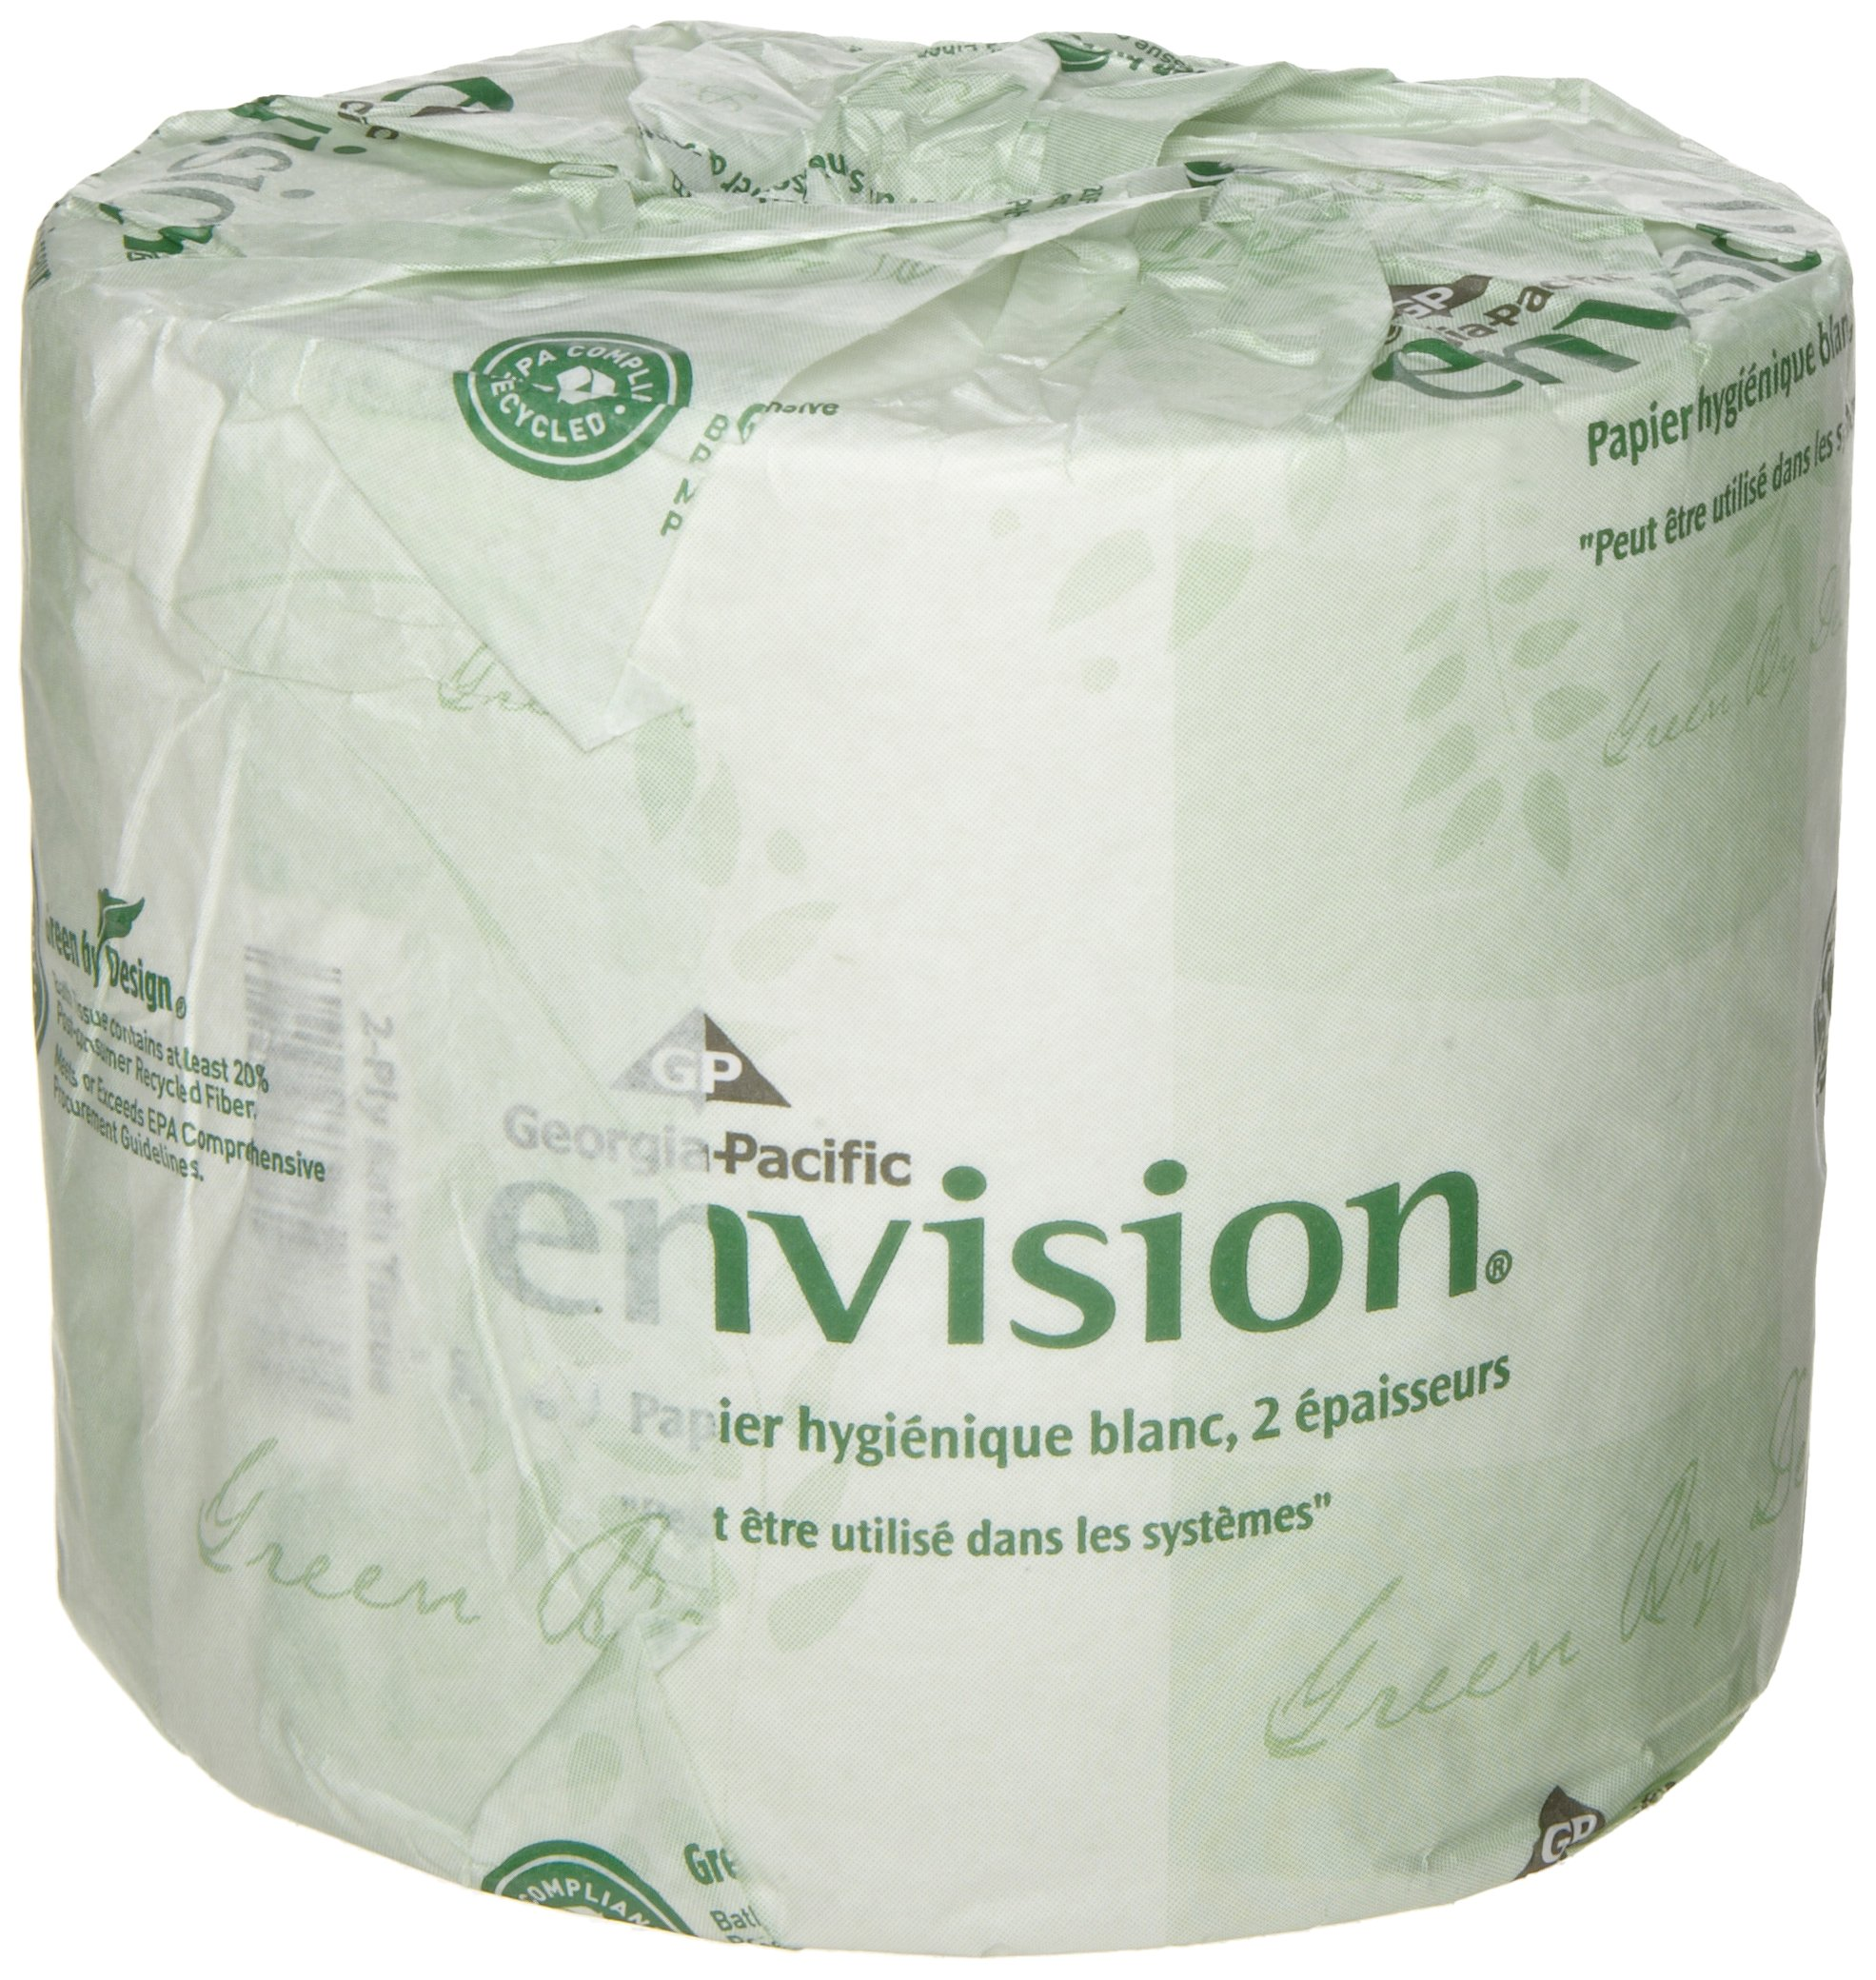 Envision 19880/01 Toilet Paper - wrapped